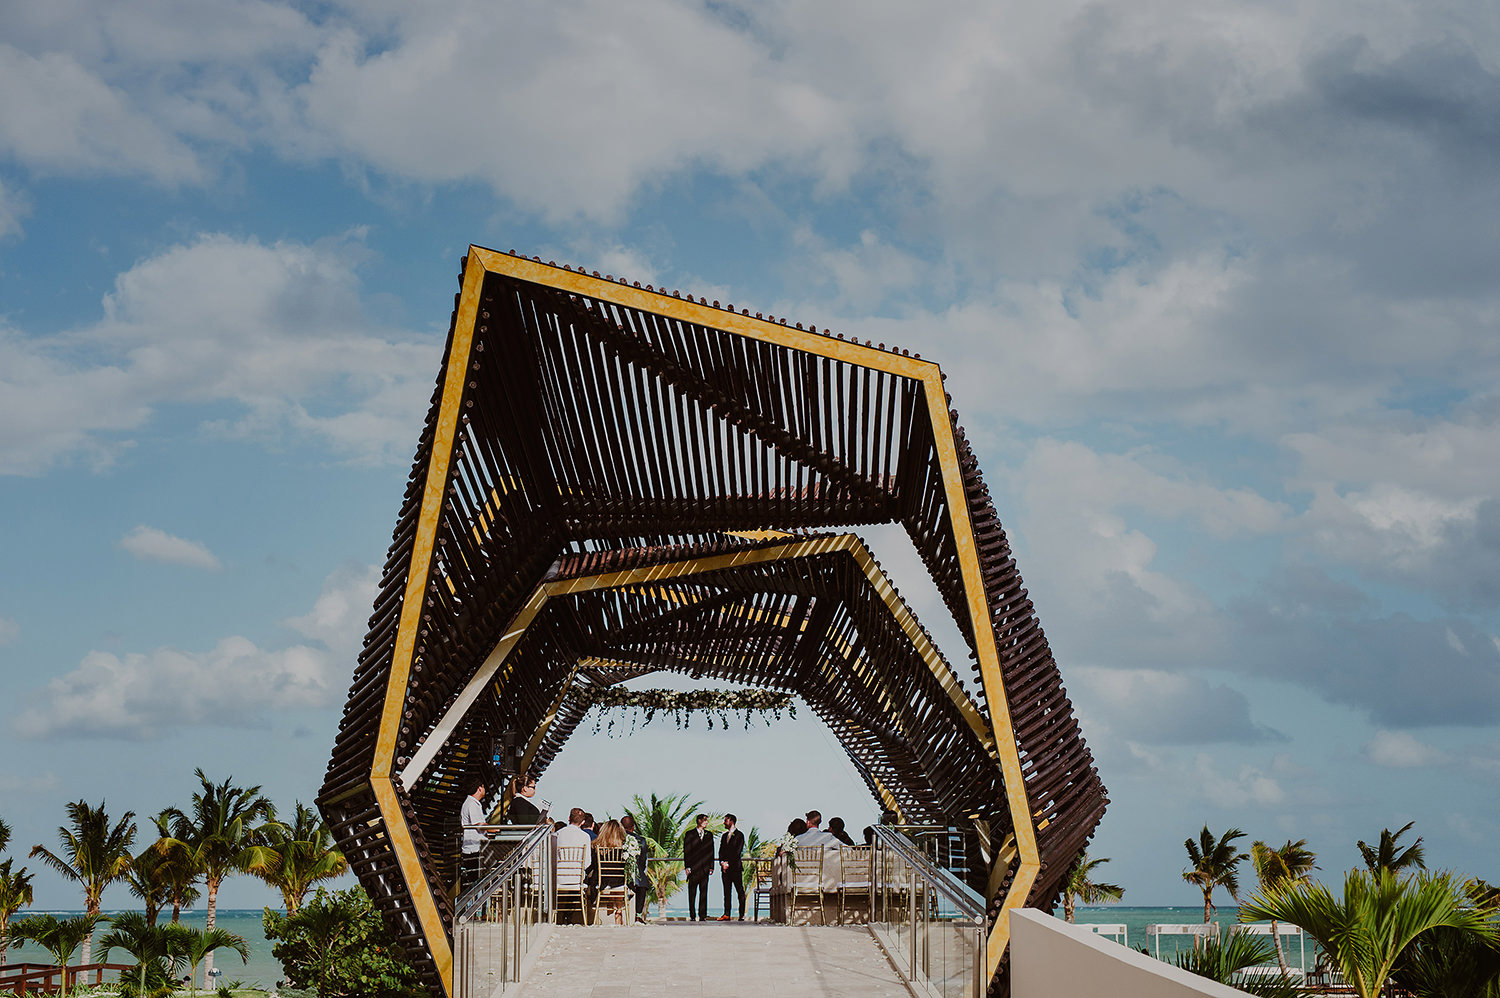 CherylReed_Wedding_Kape_Photography_WeddingPhotography_Mexico_Boda_Fotografia_Royalton_Hideway_Cancun_RivieraMaya_PlayadelCarmen_Beach_192FB_BLOG.jpg